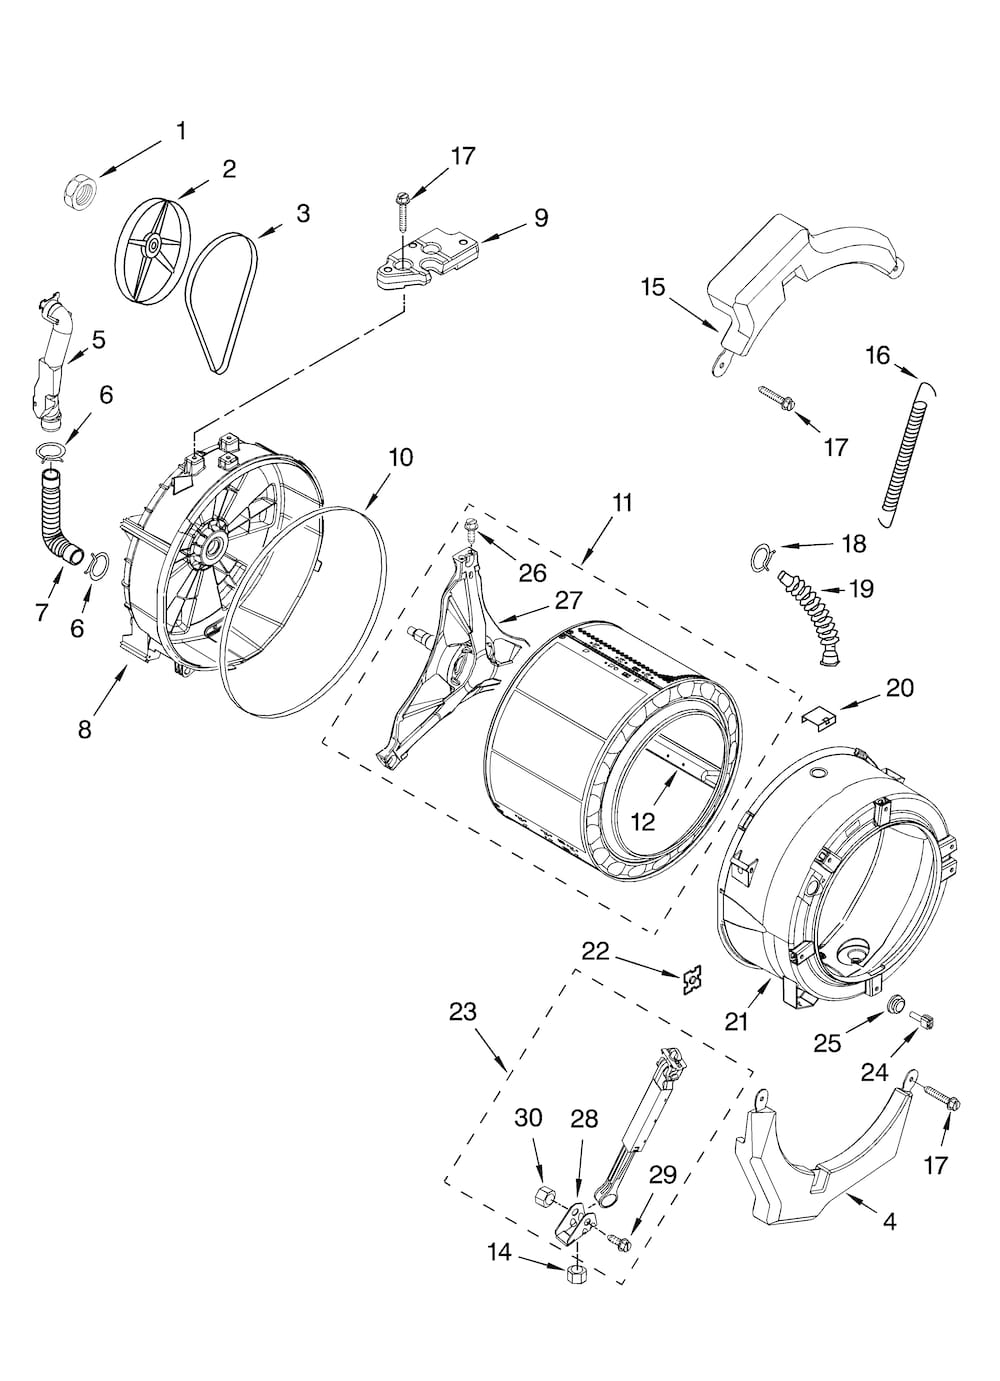 Kenmore Washer Parts